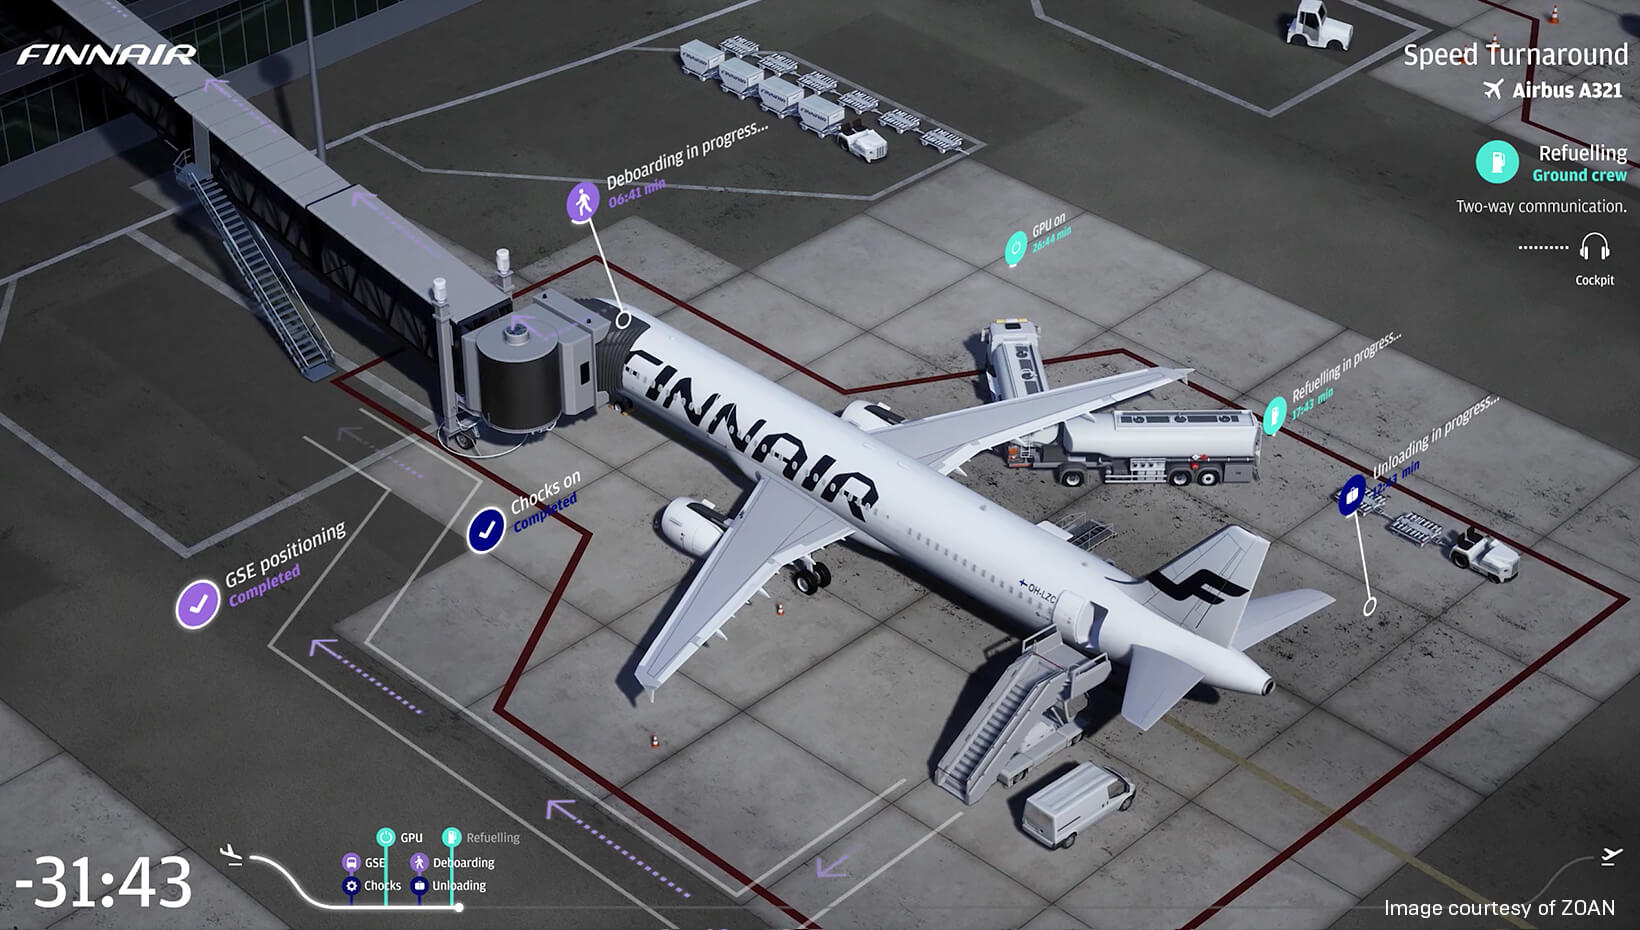 Spotlight_Zoan_Finnair_blog_body_turnaround_img2.jpg